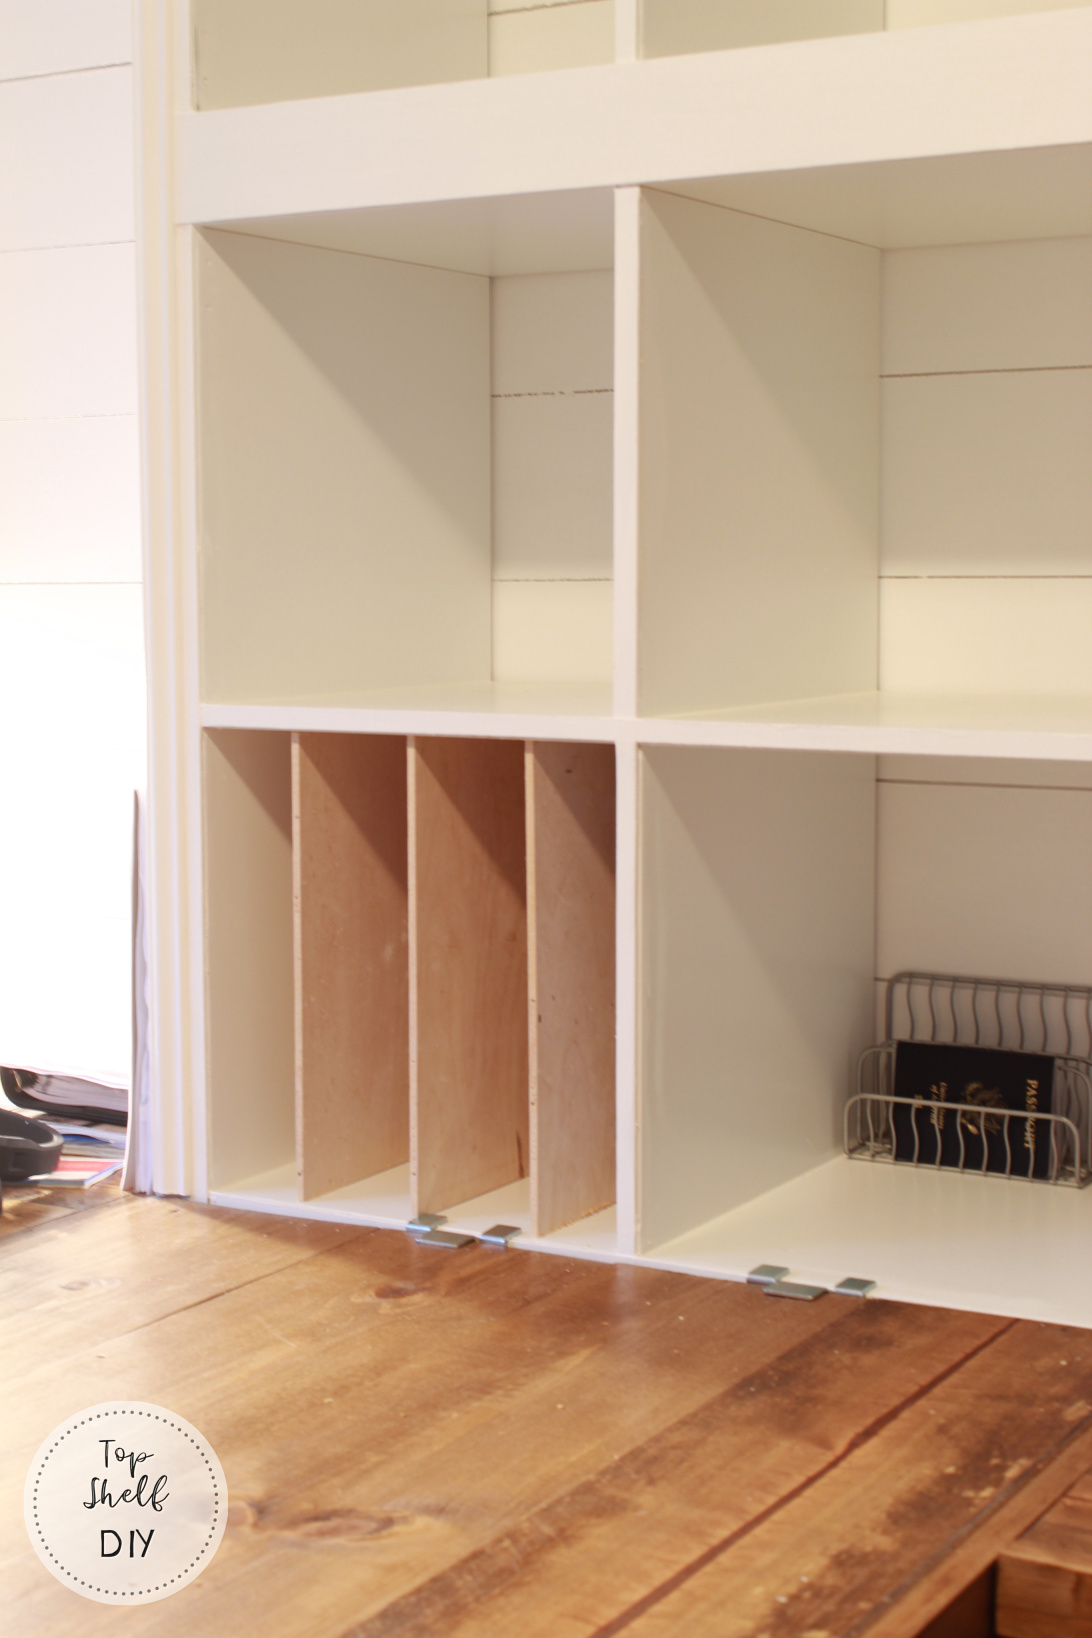 Here's how to add as many shelf dividers as you wish to your Kallax Unit!